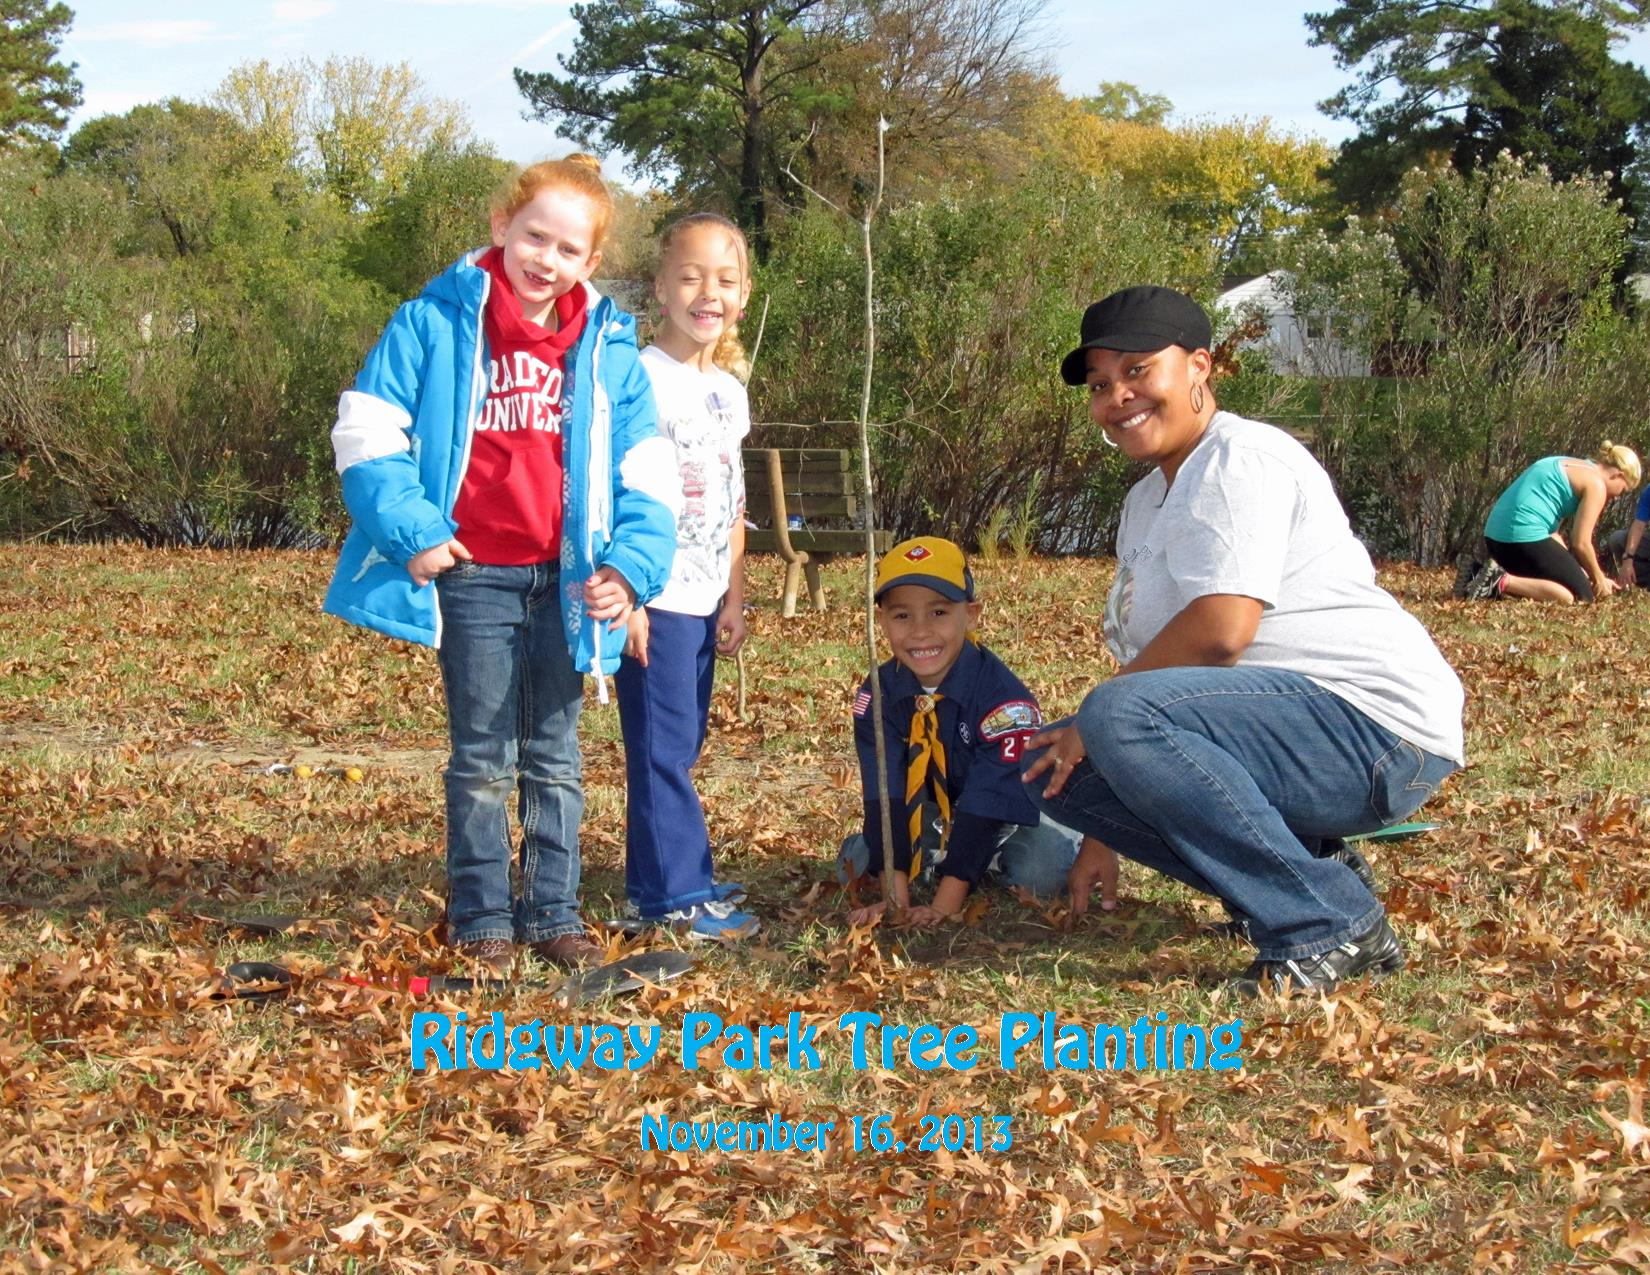 11-16-13 Ridgway Park Tree Planting Kids and Mom